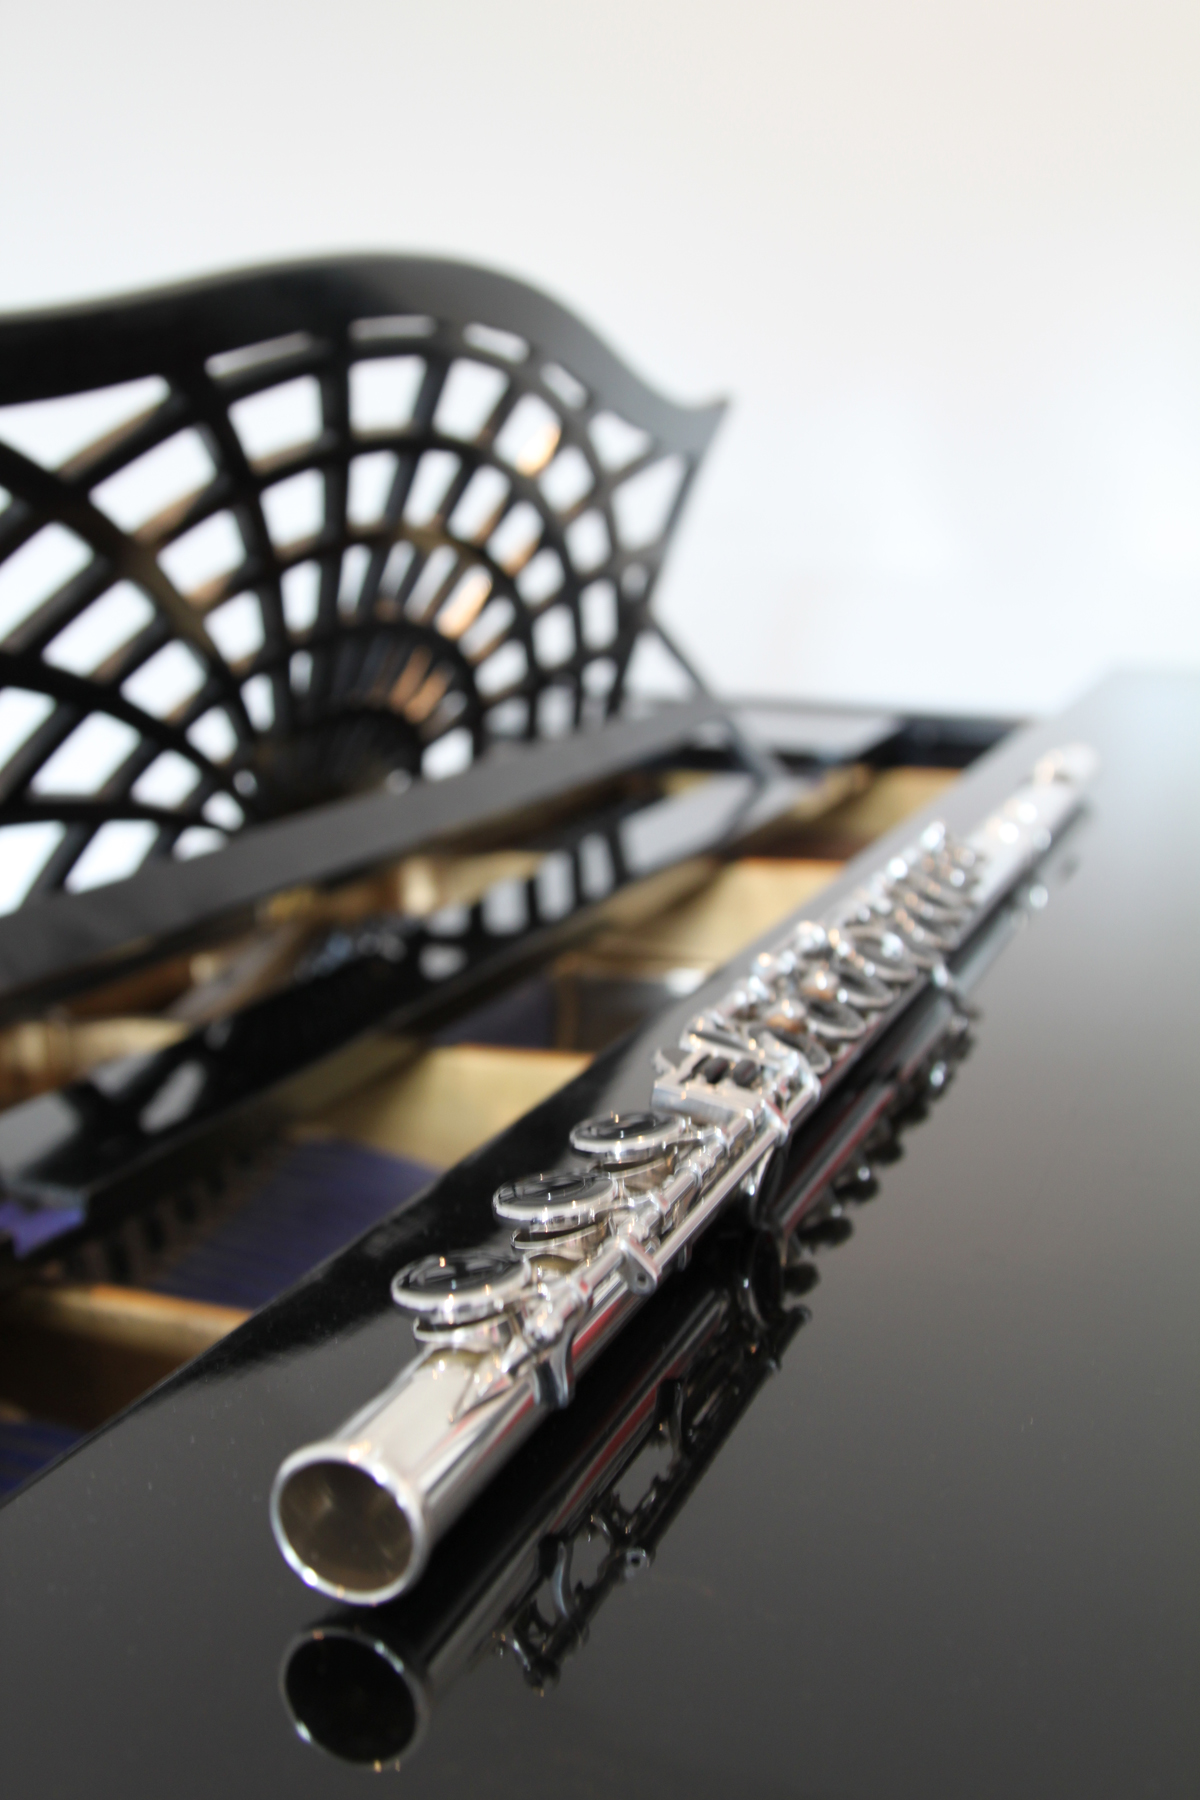 The flute is an immensely popular choice for students wanting to begin learning a musical instrument. Photo: Lucy Beveridge